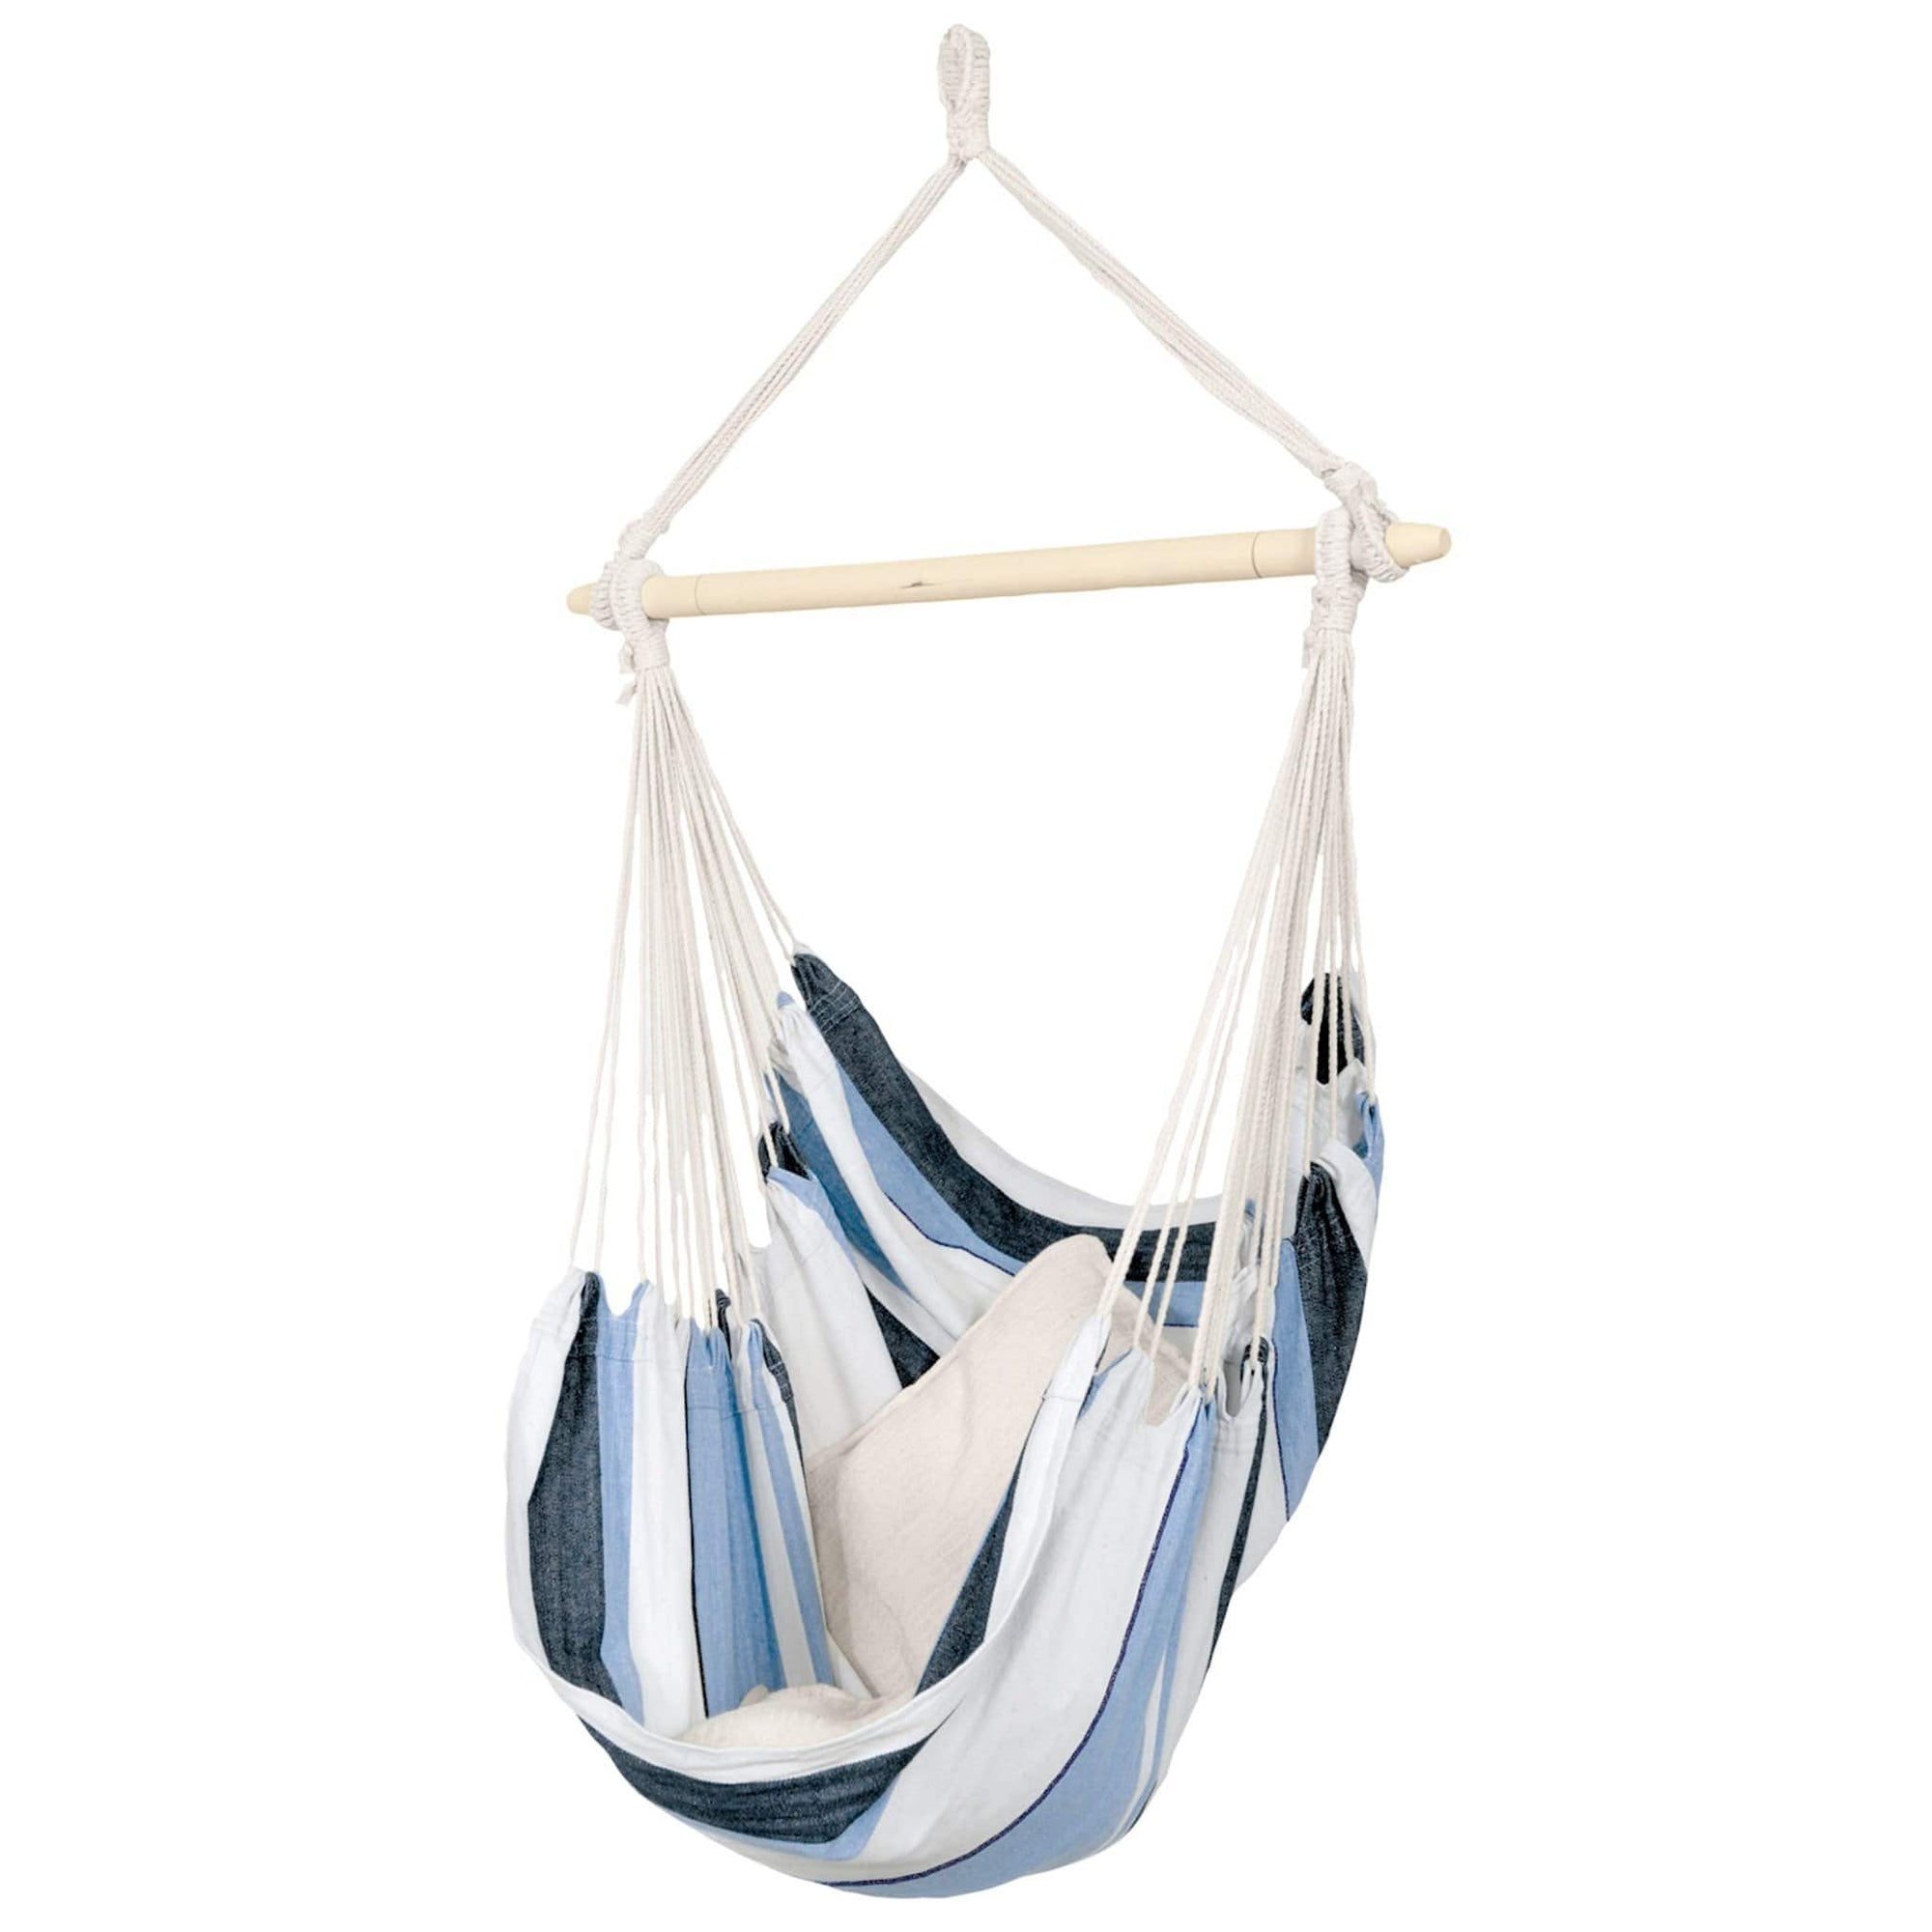 Amazonas Hammock Chair Marine Havanna Hammock Chair